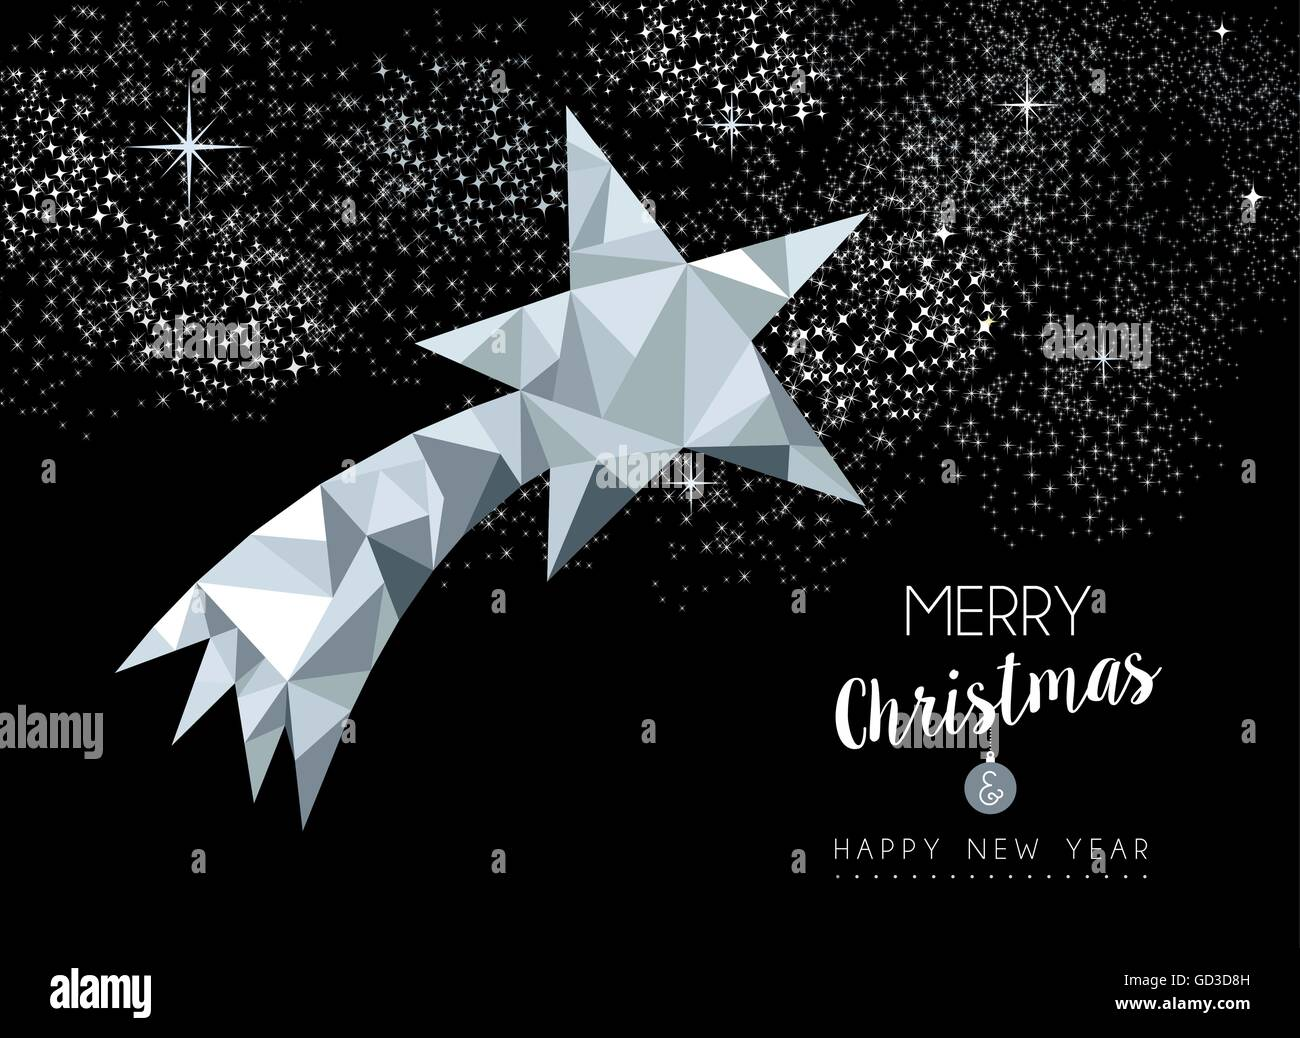 Merry christmas and happy new year fancy silver shooting star in low poly style. - Stock Image